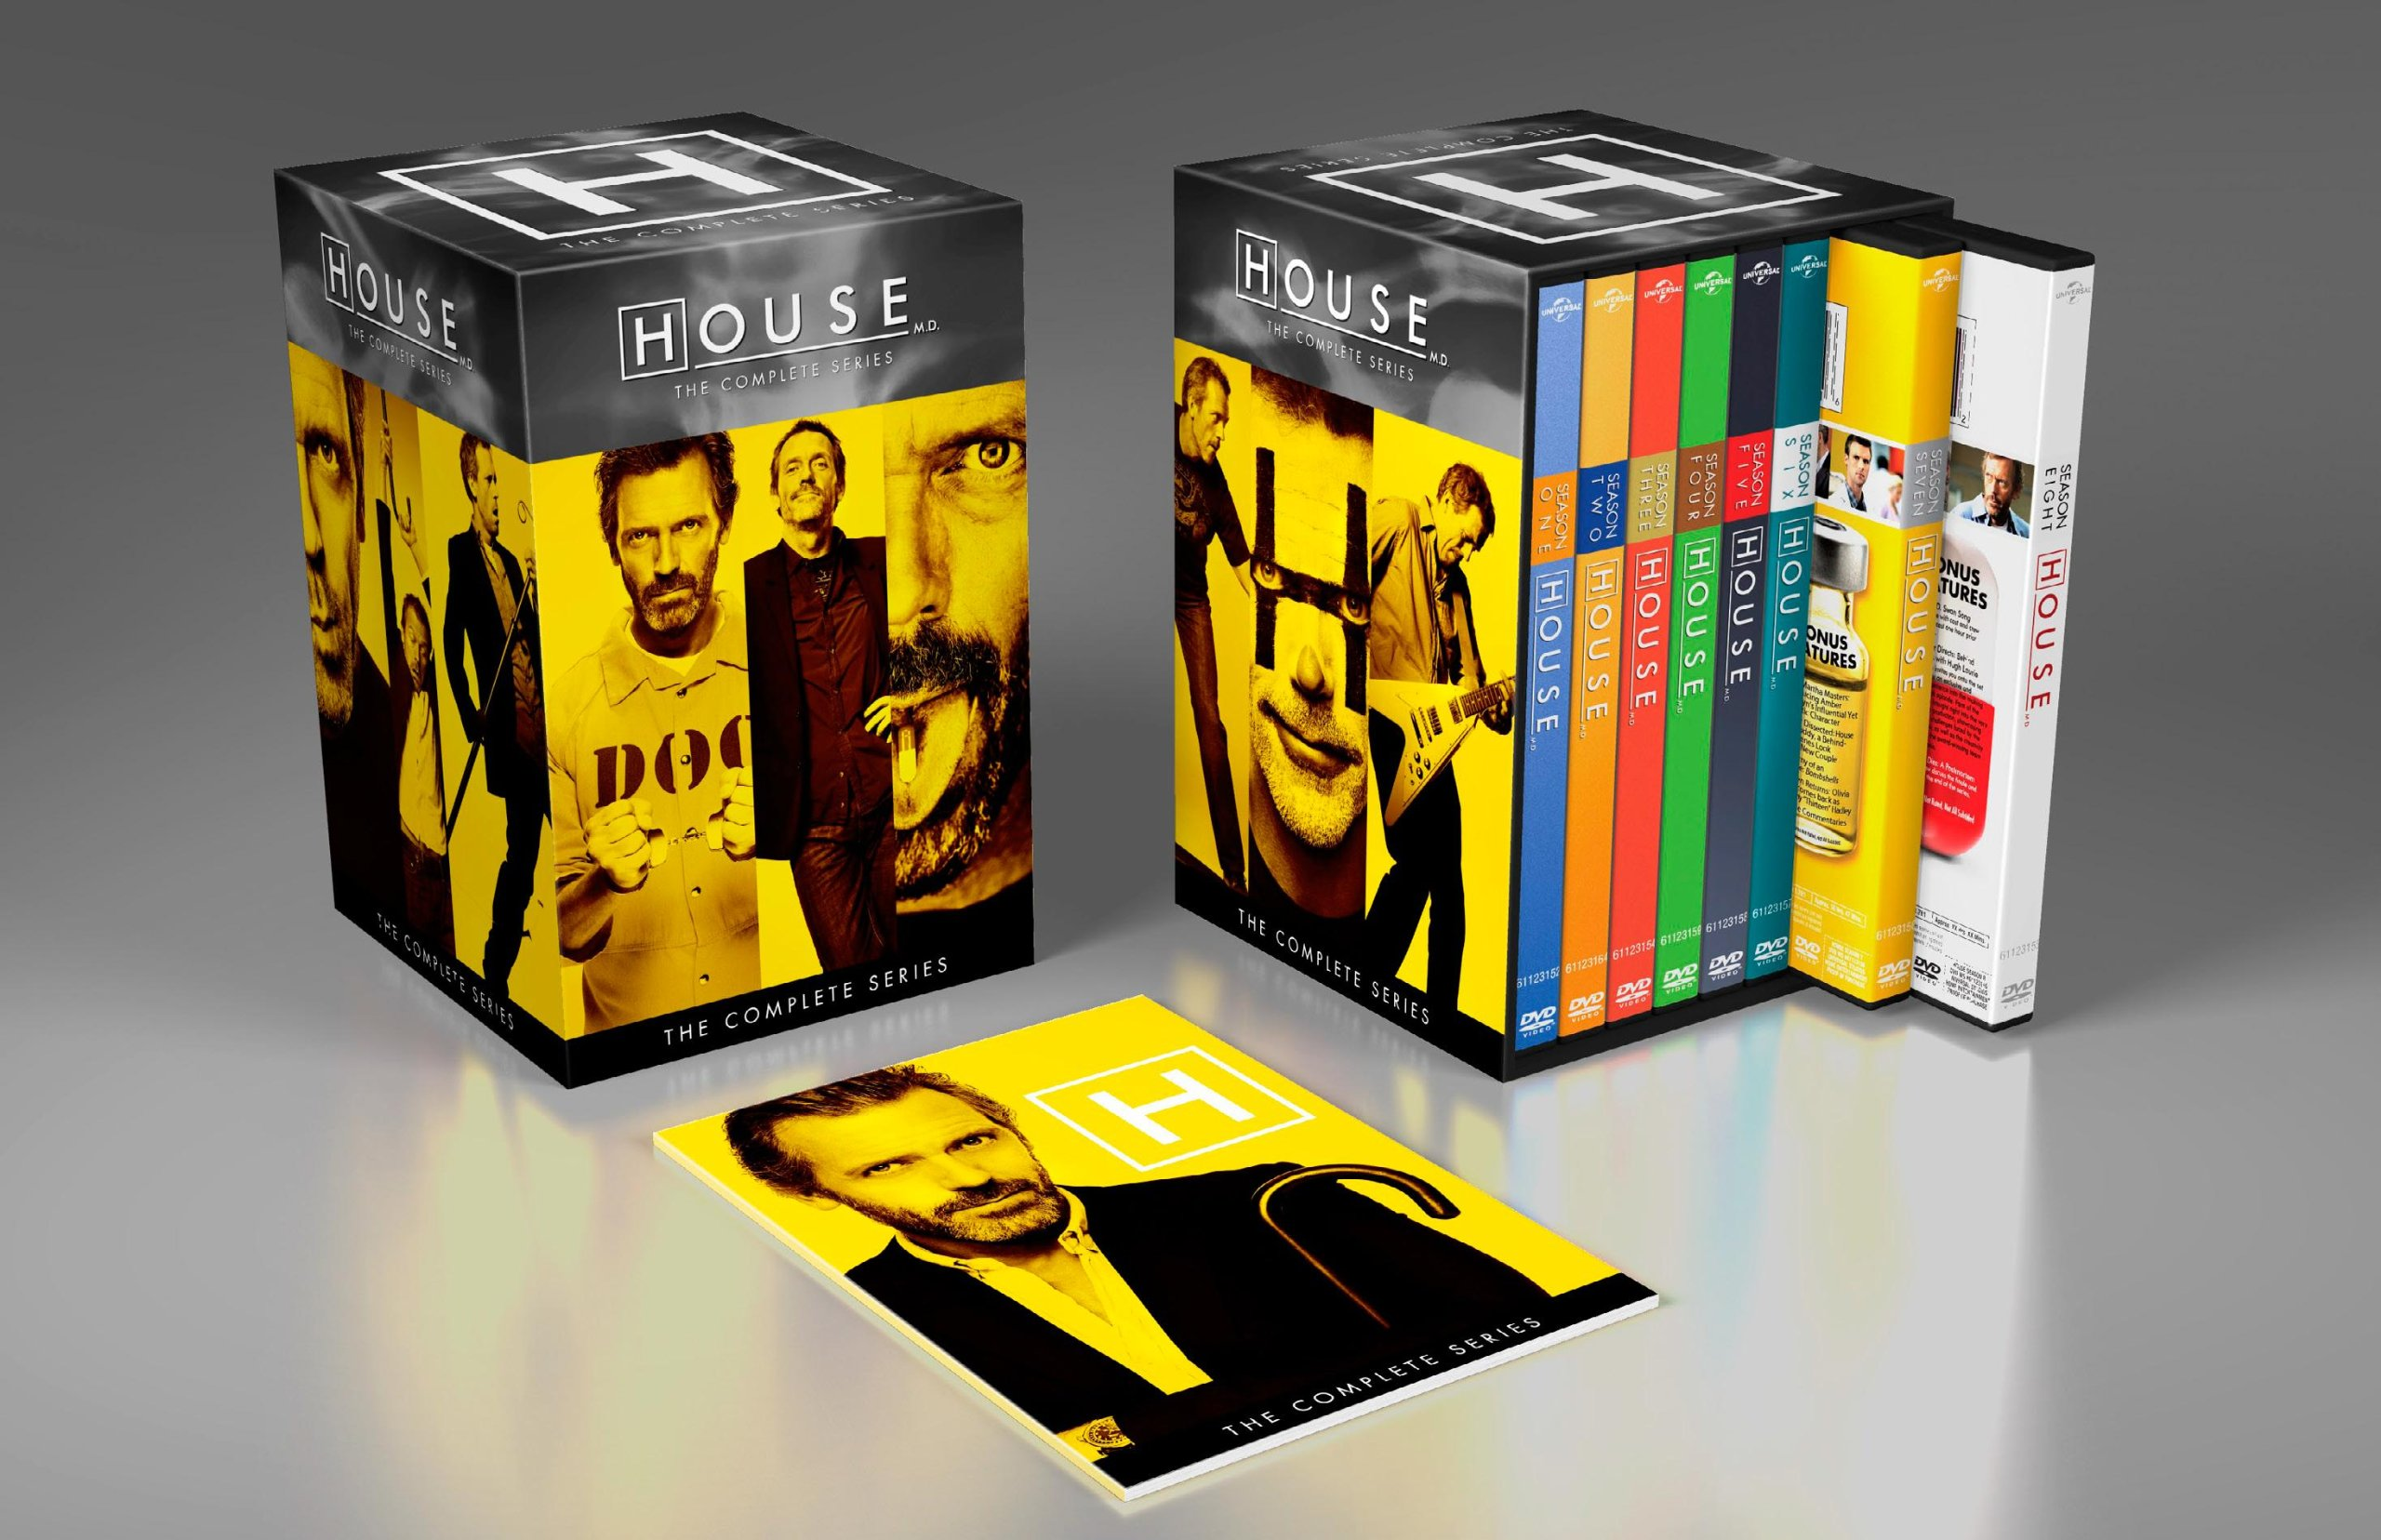 House, M.D.: The Complete Series by Universal Studios